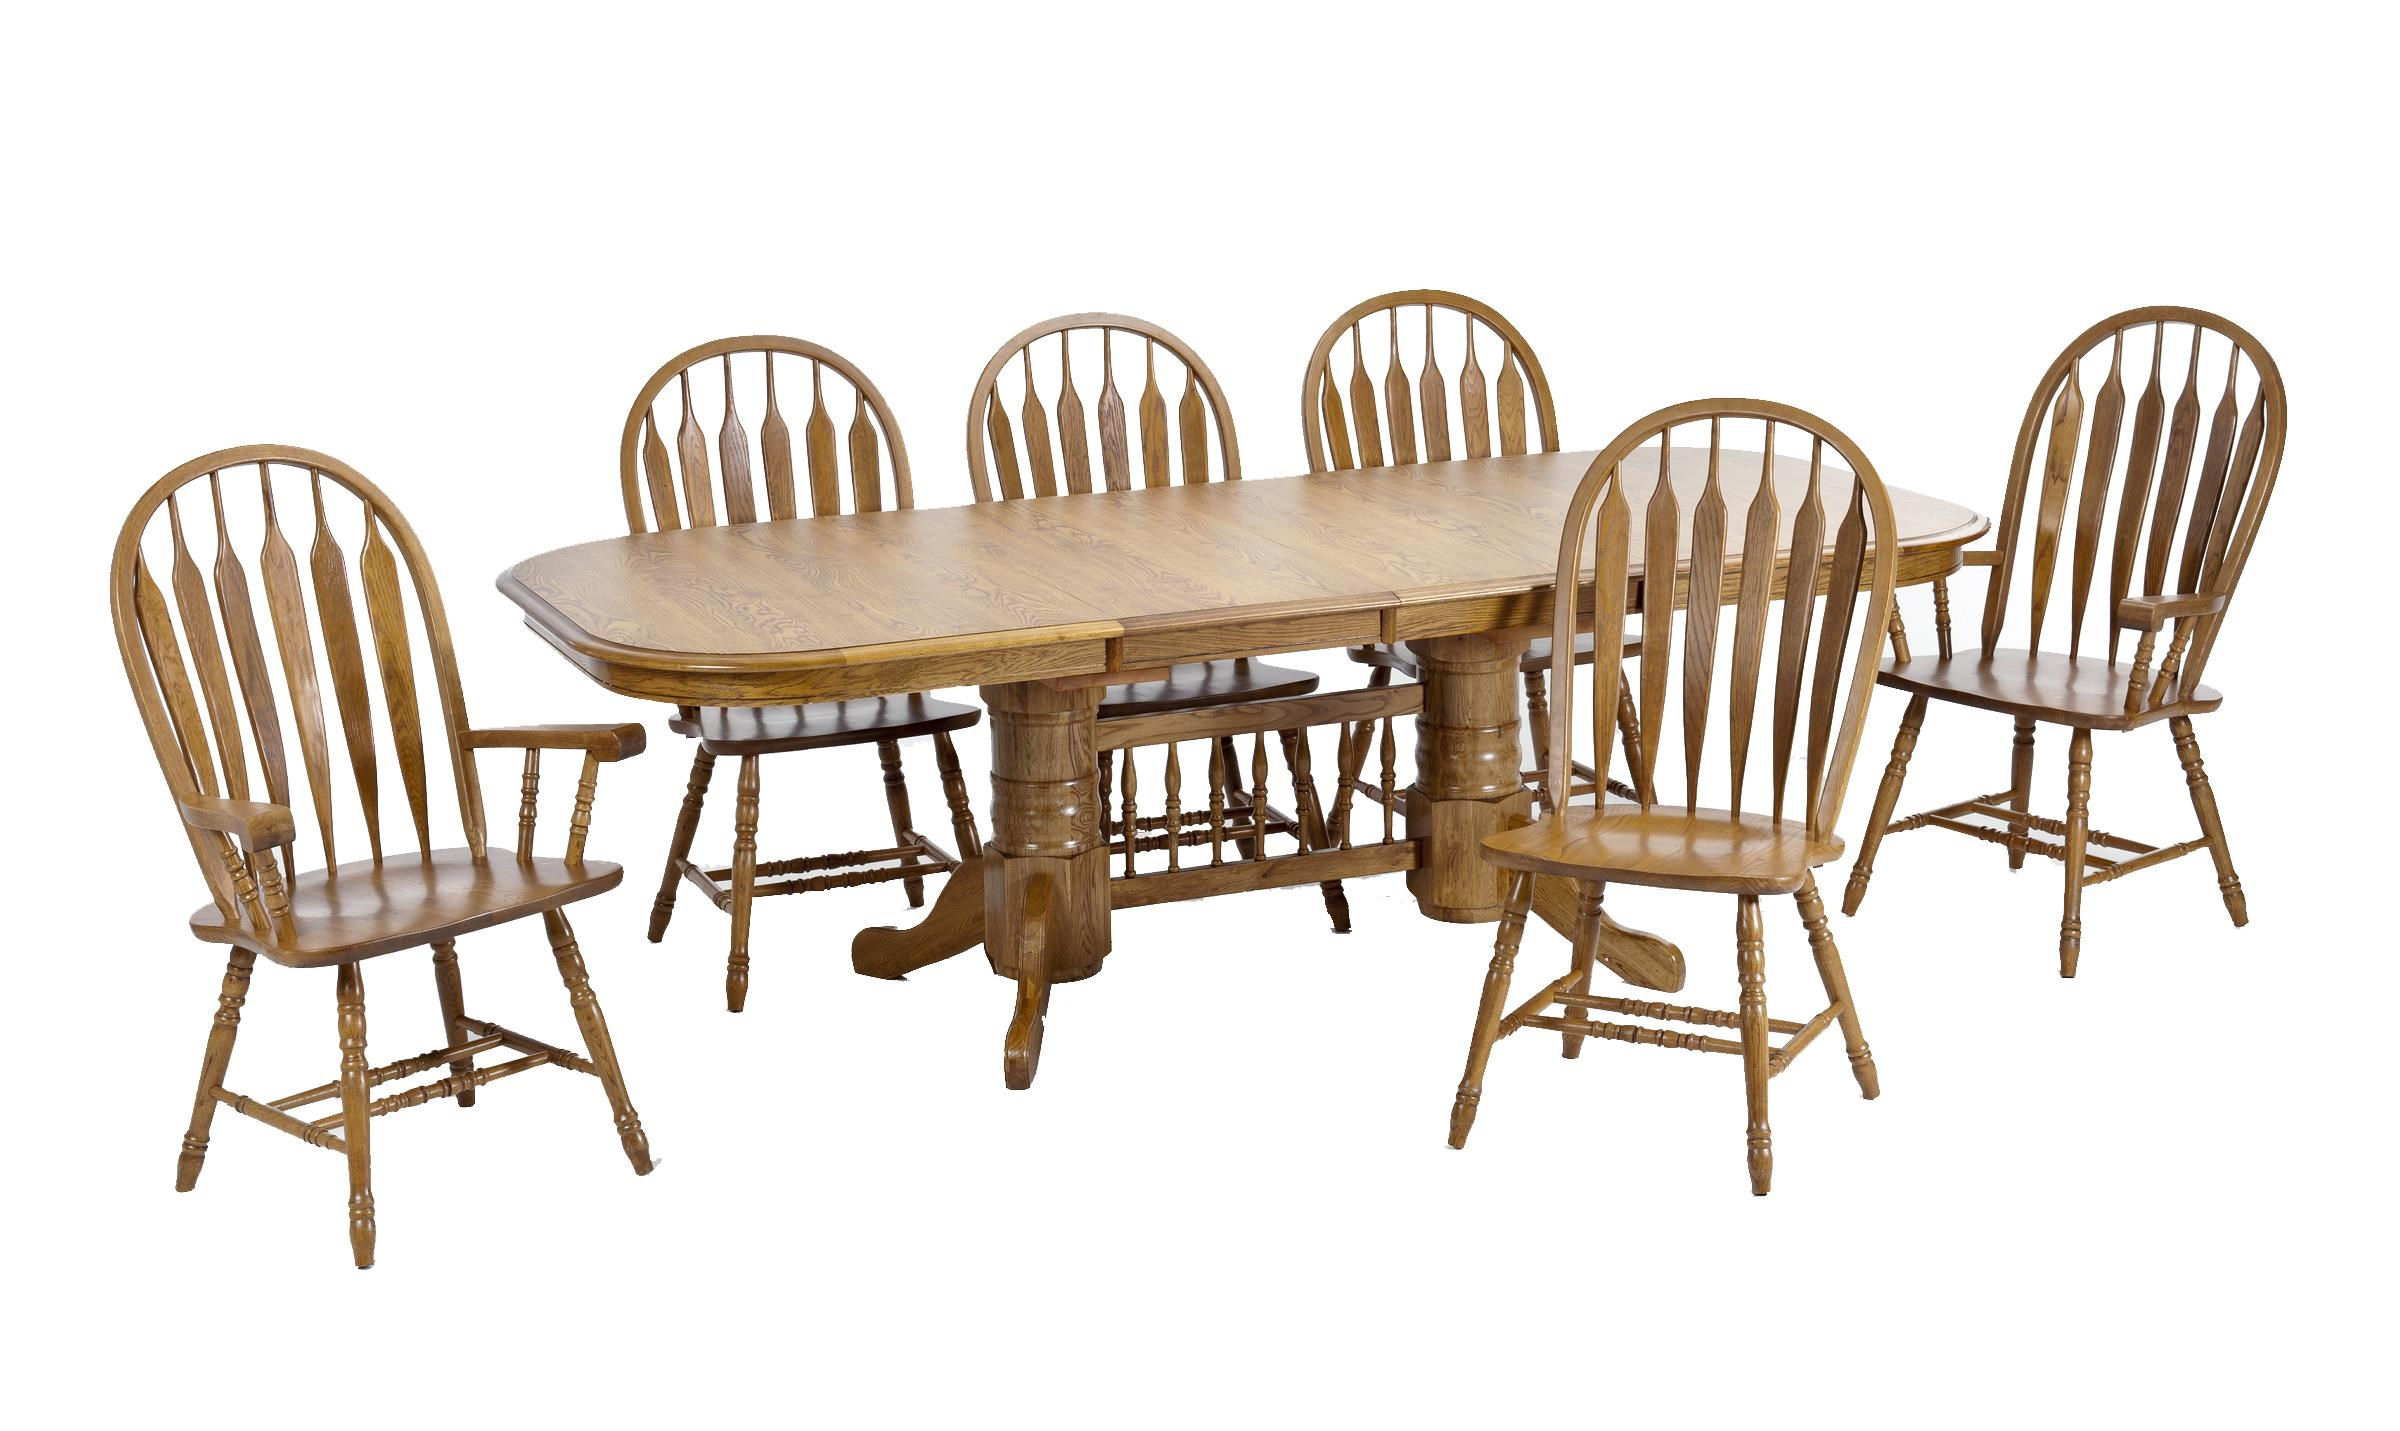 Intercon Classic Oak Trestle Table With Two Wide Curved Arrow Arm Chairs  And Four Wide Curved Arrow Side Chairs